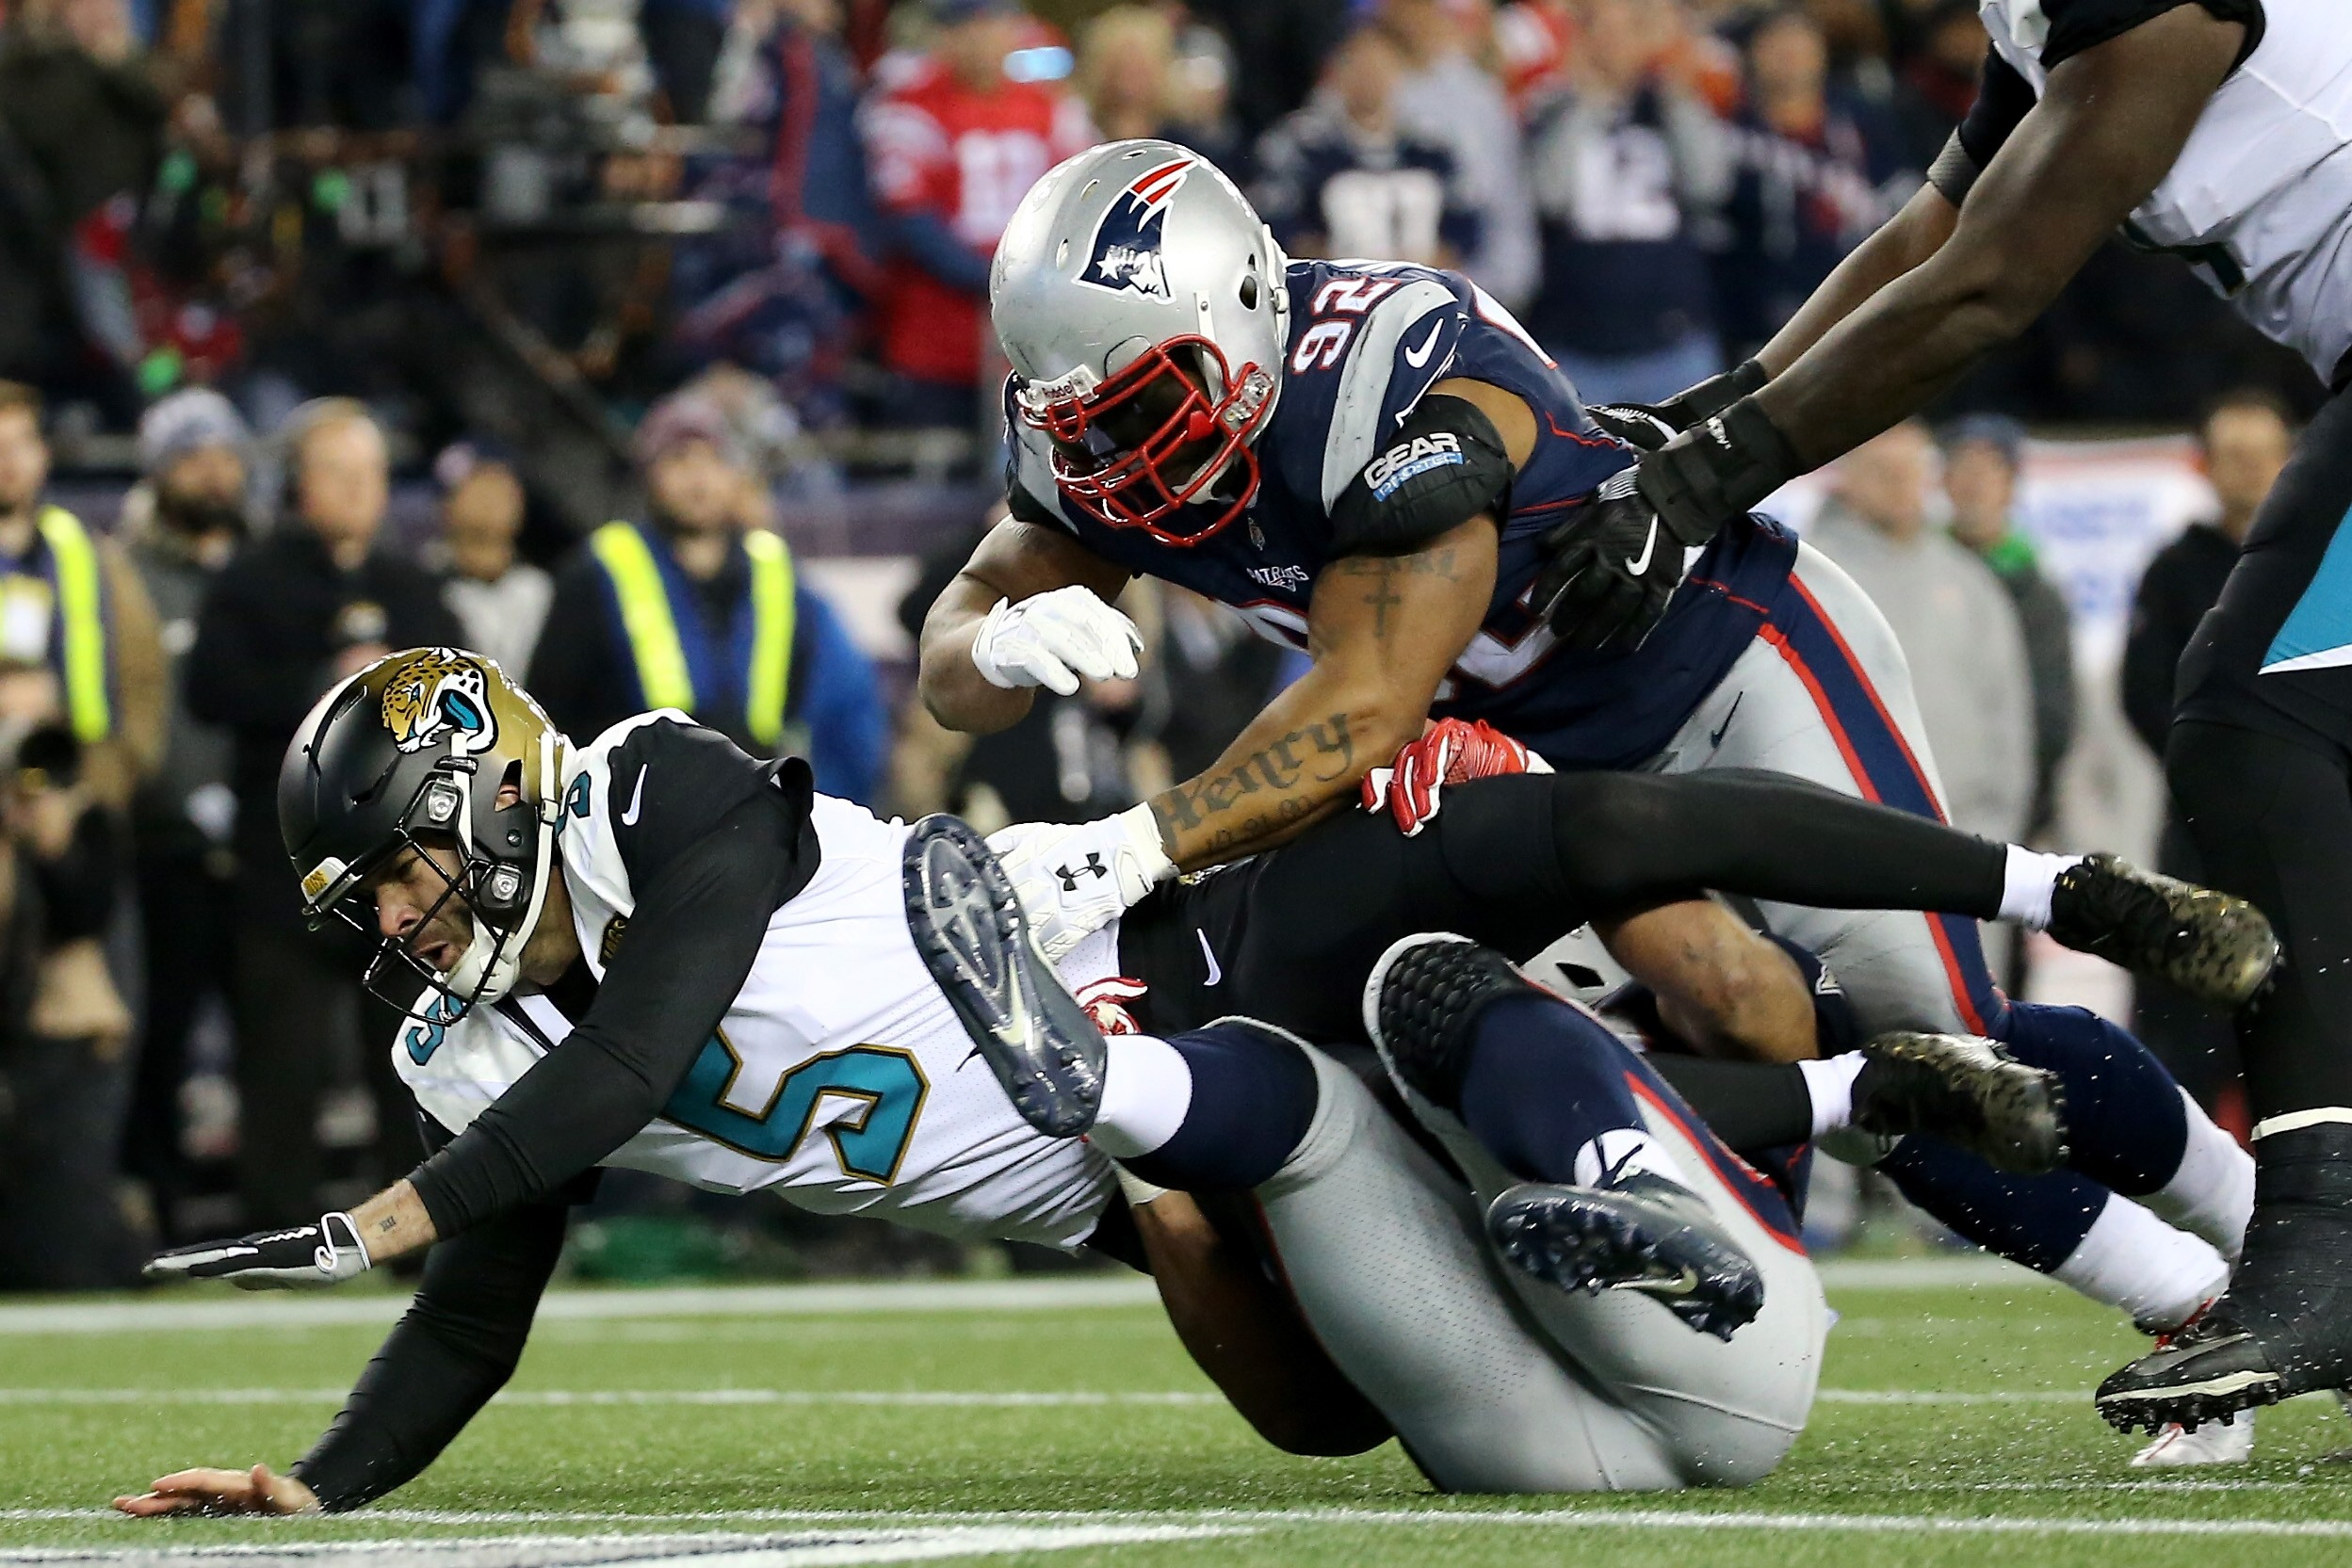 FOXBOROUGH, MA - JANUARY 21: Blake Bortles #5 of the Jacksonville Jaguars is tackled in the second half against James Harrison #92 of the New England Patriots during the AFC Championship Game at Gillette Stadium on January 21, 2018 in Foxborough, Massachusetts. (Photo by Jim Rogash/Getty Images)